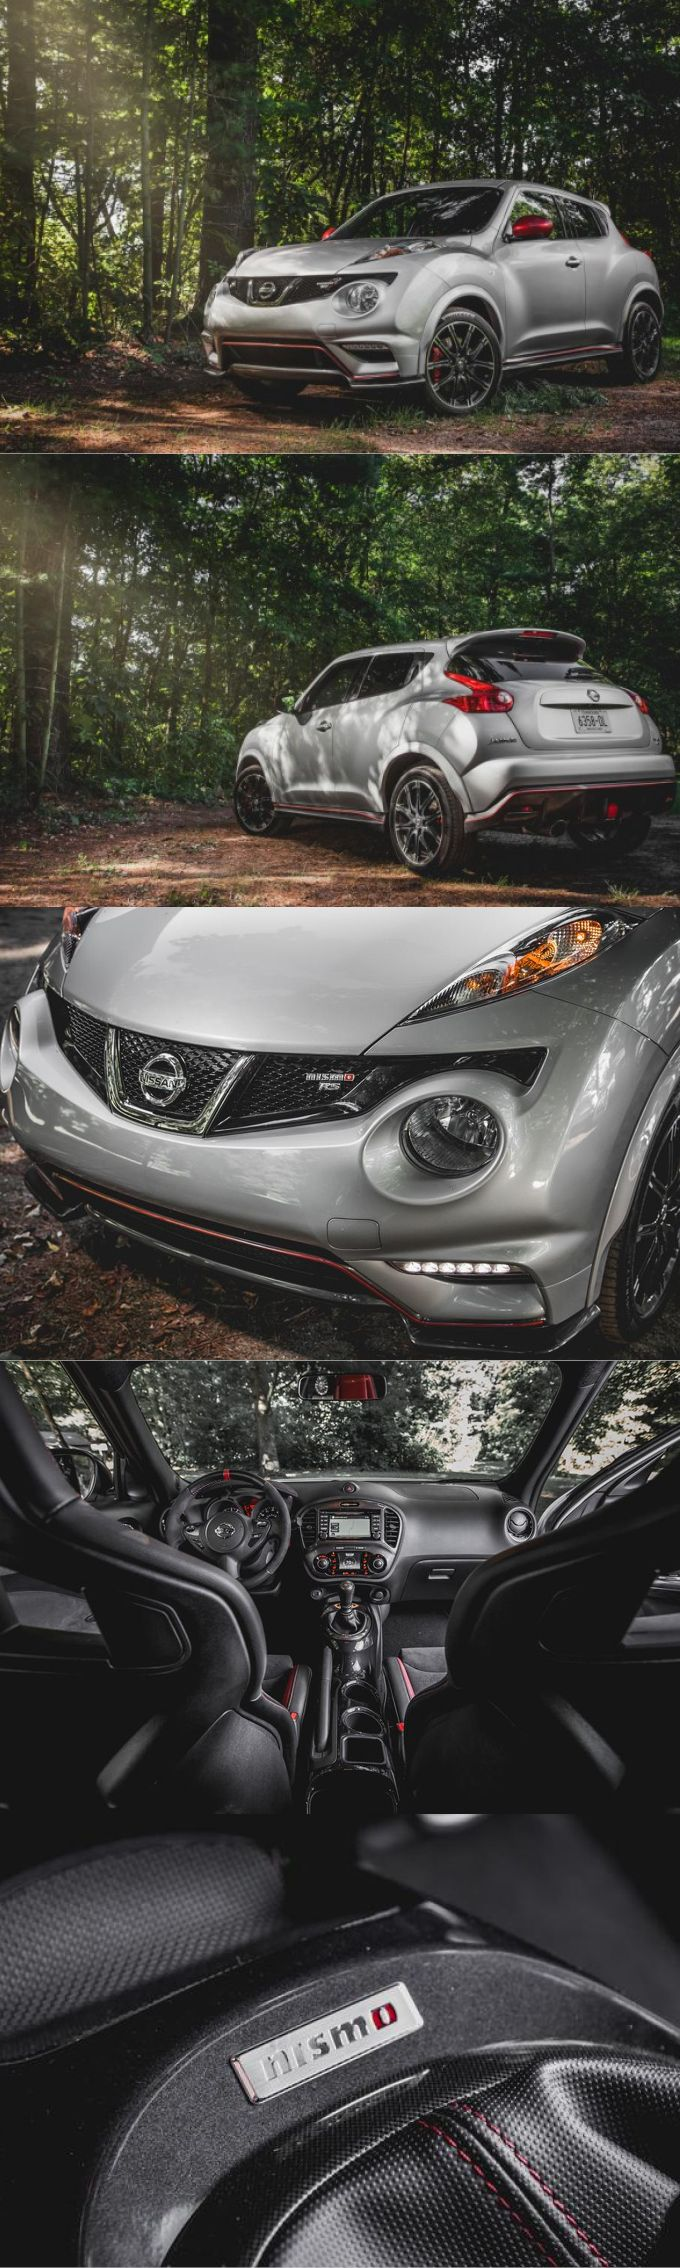 2017 Nissan Juke Nismo RS / Japan / silver red